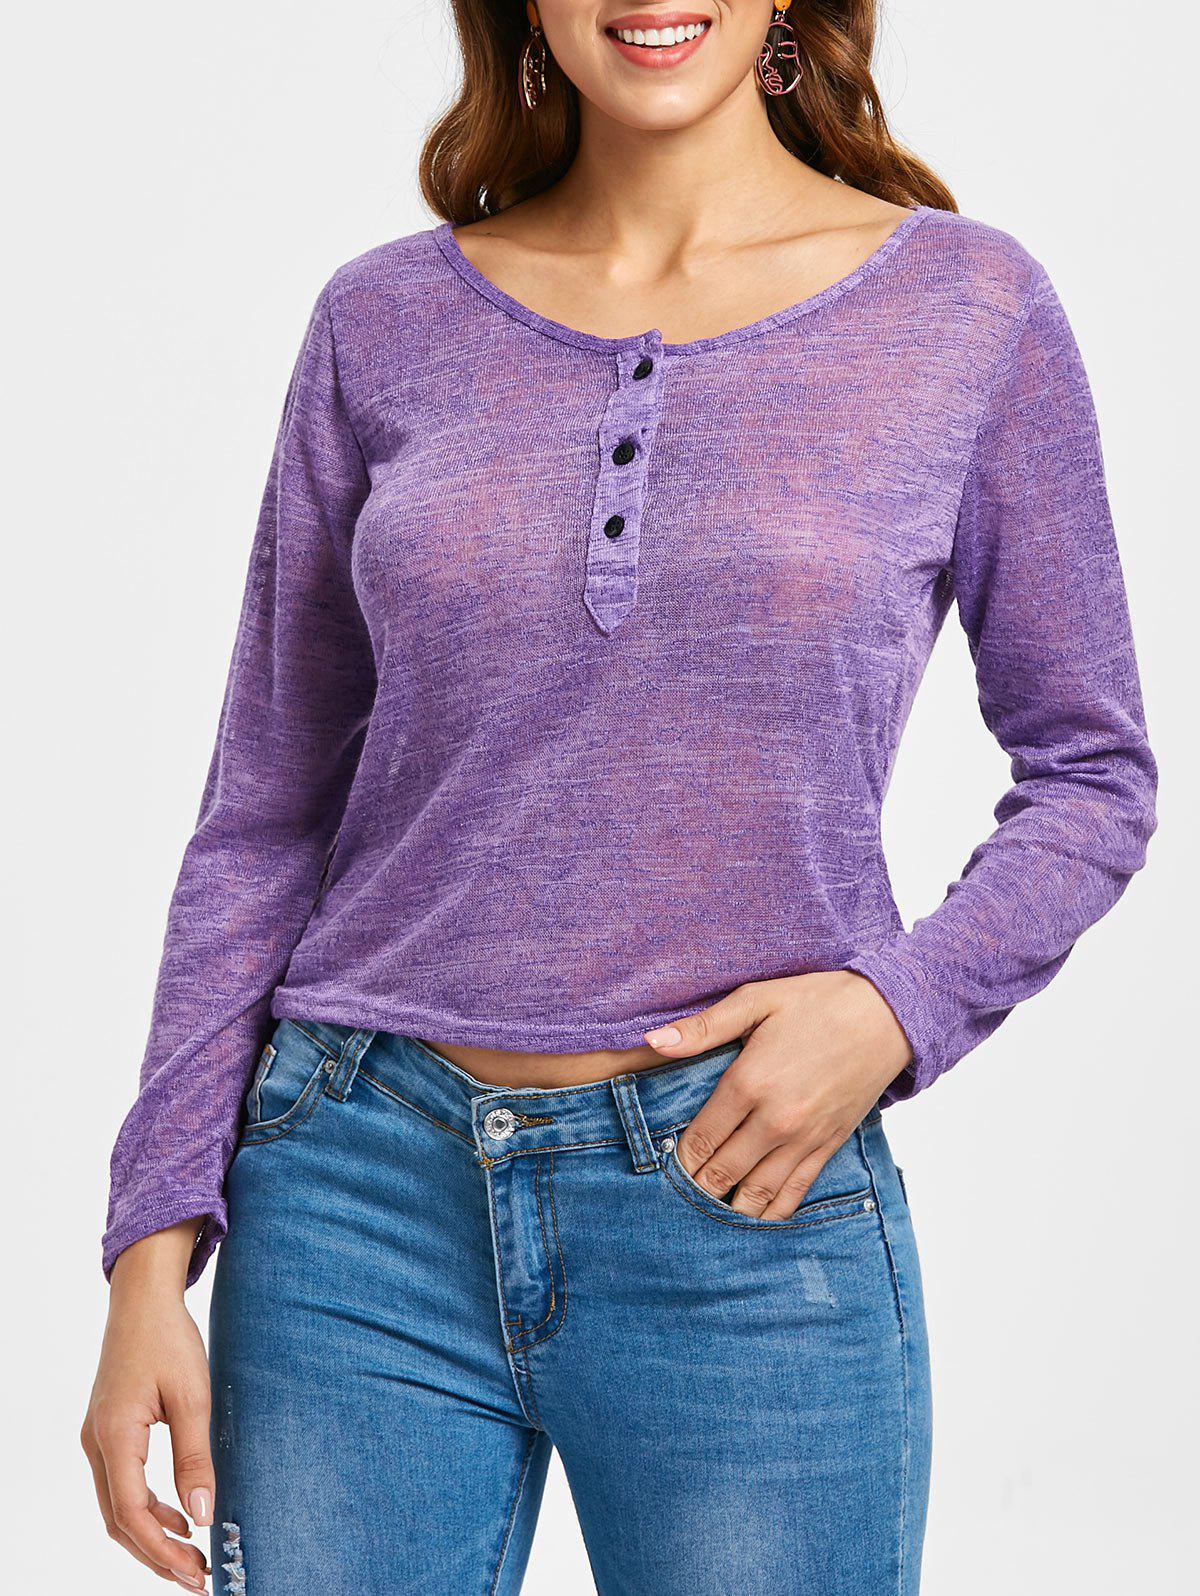 Pullover Long Sleeve Scoop Neck Solid Color Blouse For Women - PURPLE S